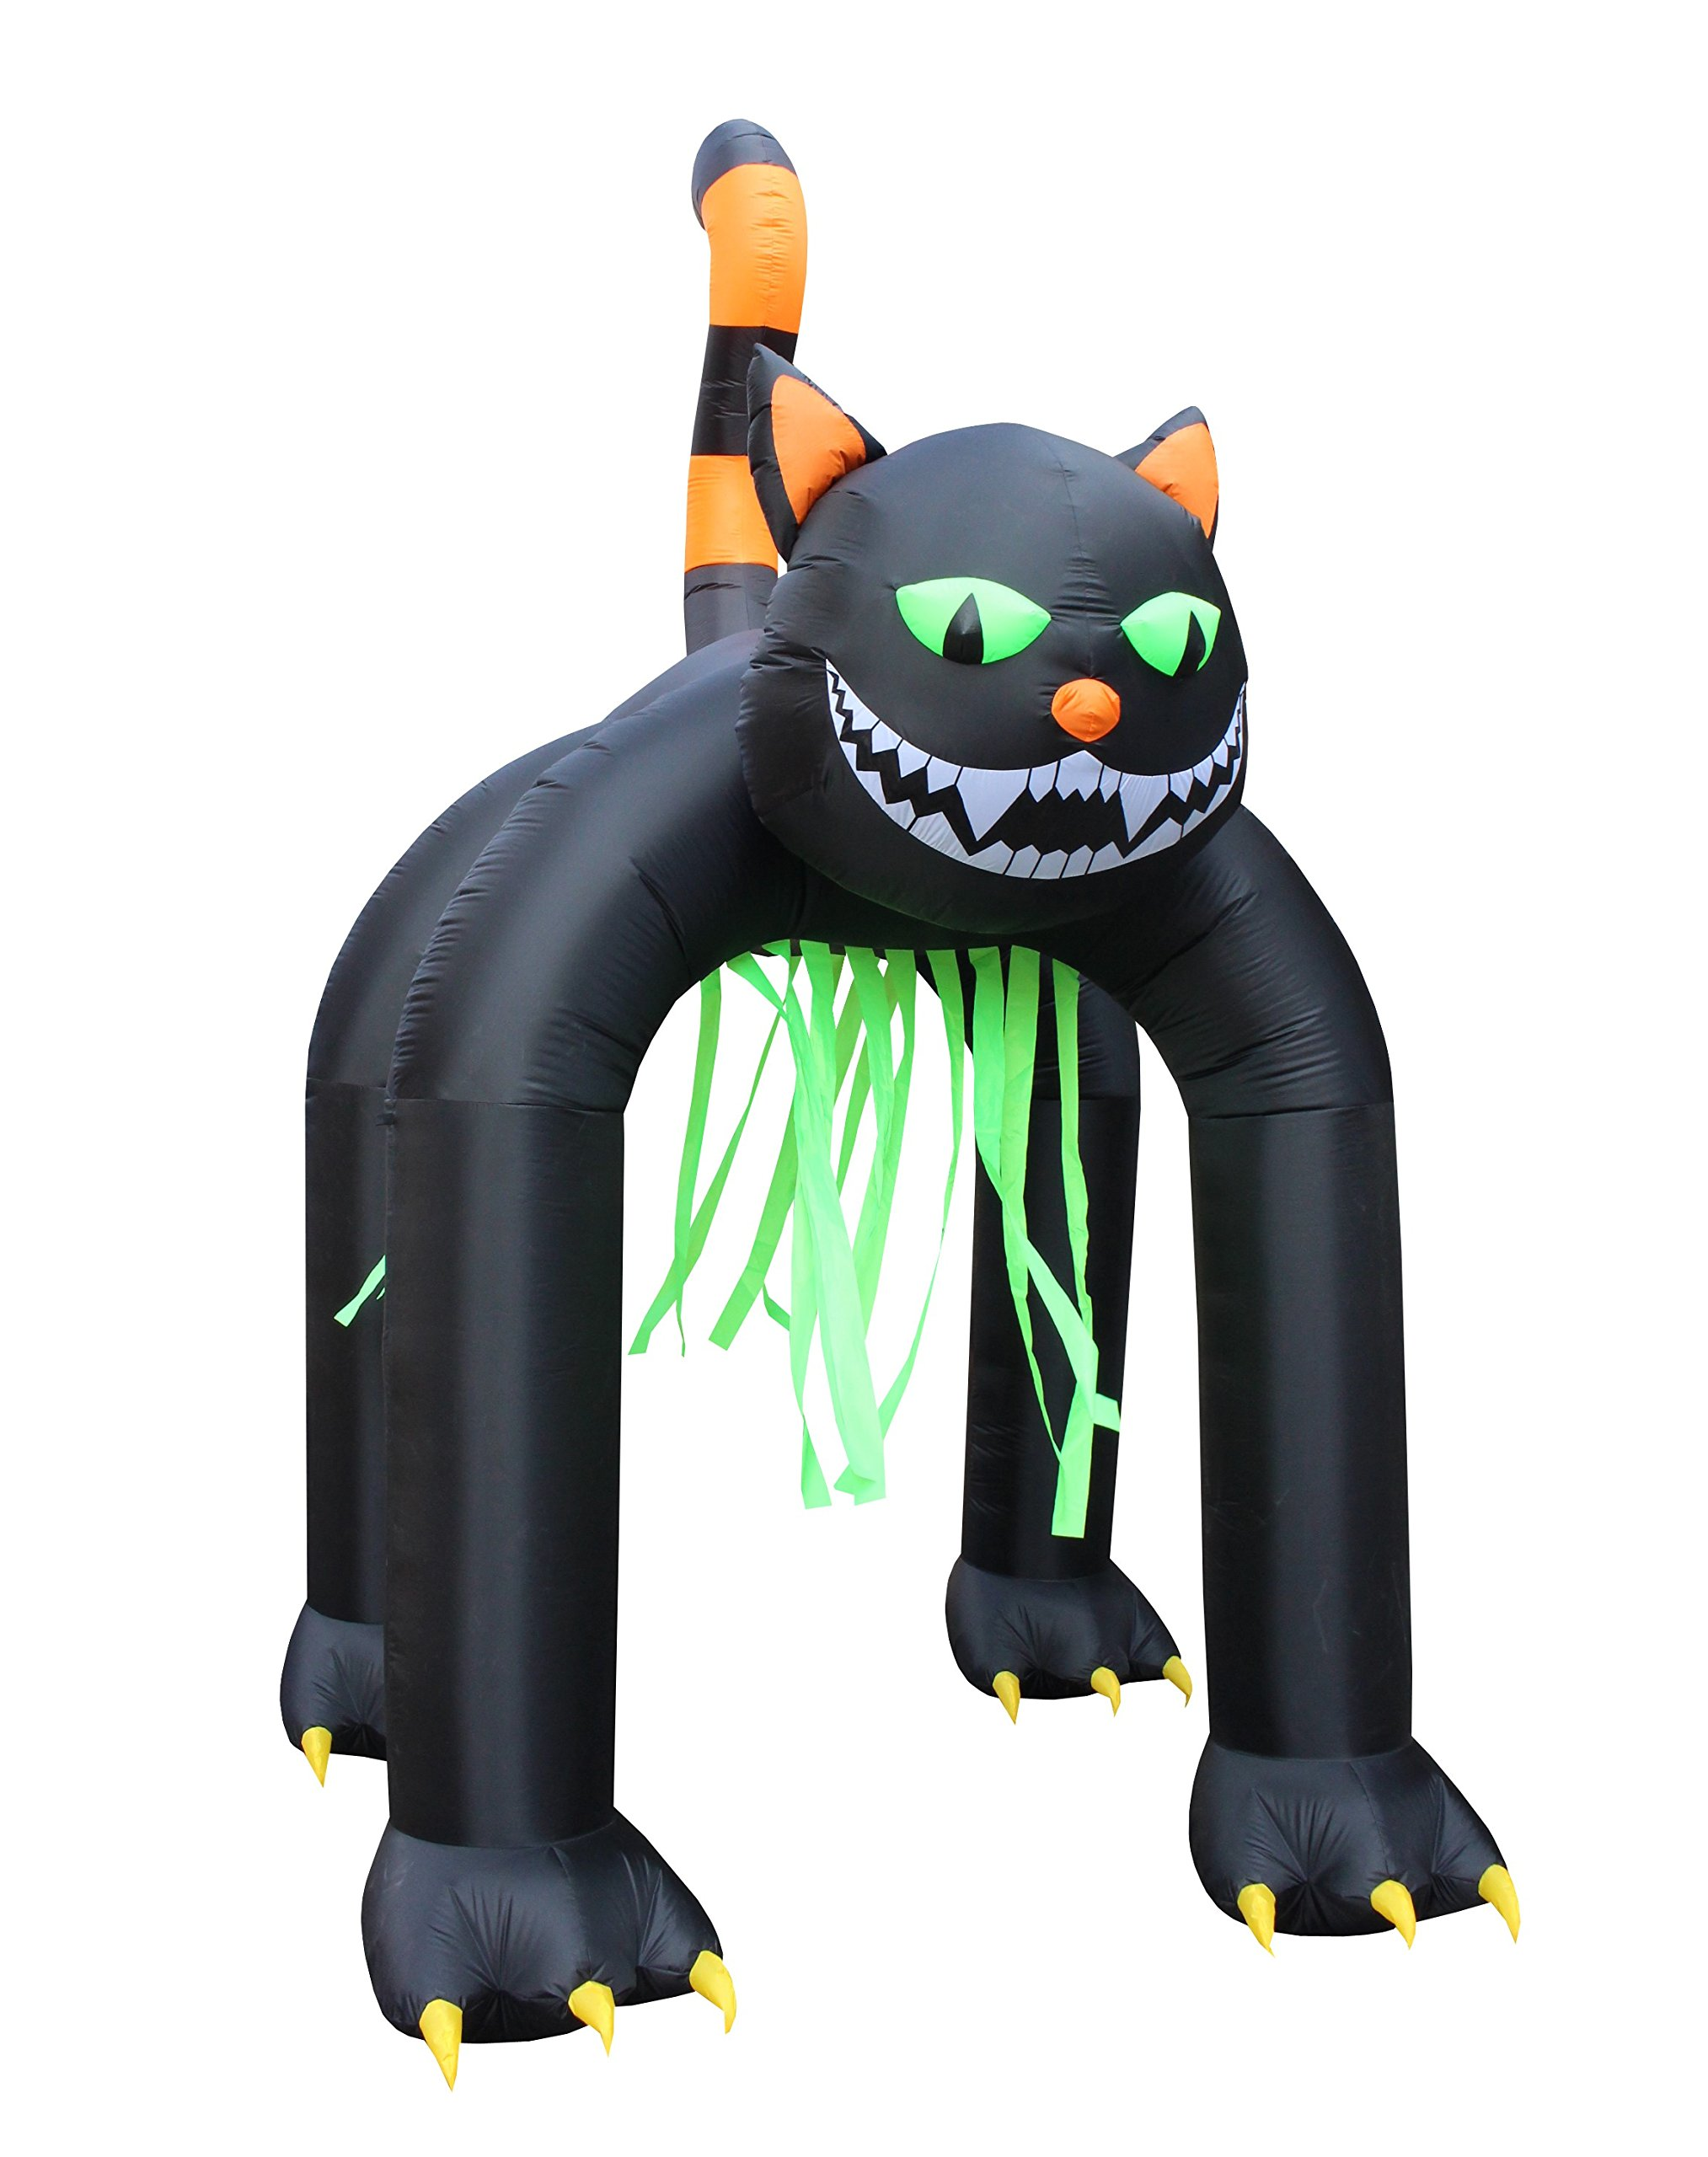 BZB Goods Jumbo 13 Foot Tall Halloween Inflatable Black Cat Archway Outdoor Indoor Holiday Decorations, Blow Up LED Lights Lighted Yard Decor, Giant Lawn Inflatables for Home Family Party Prop